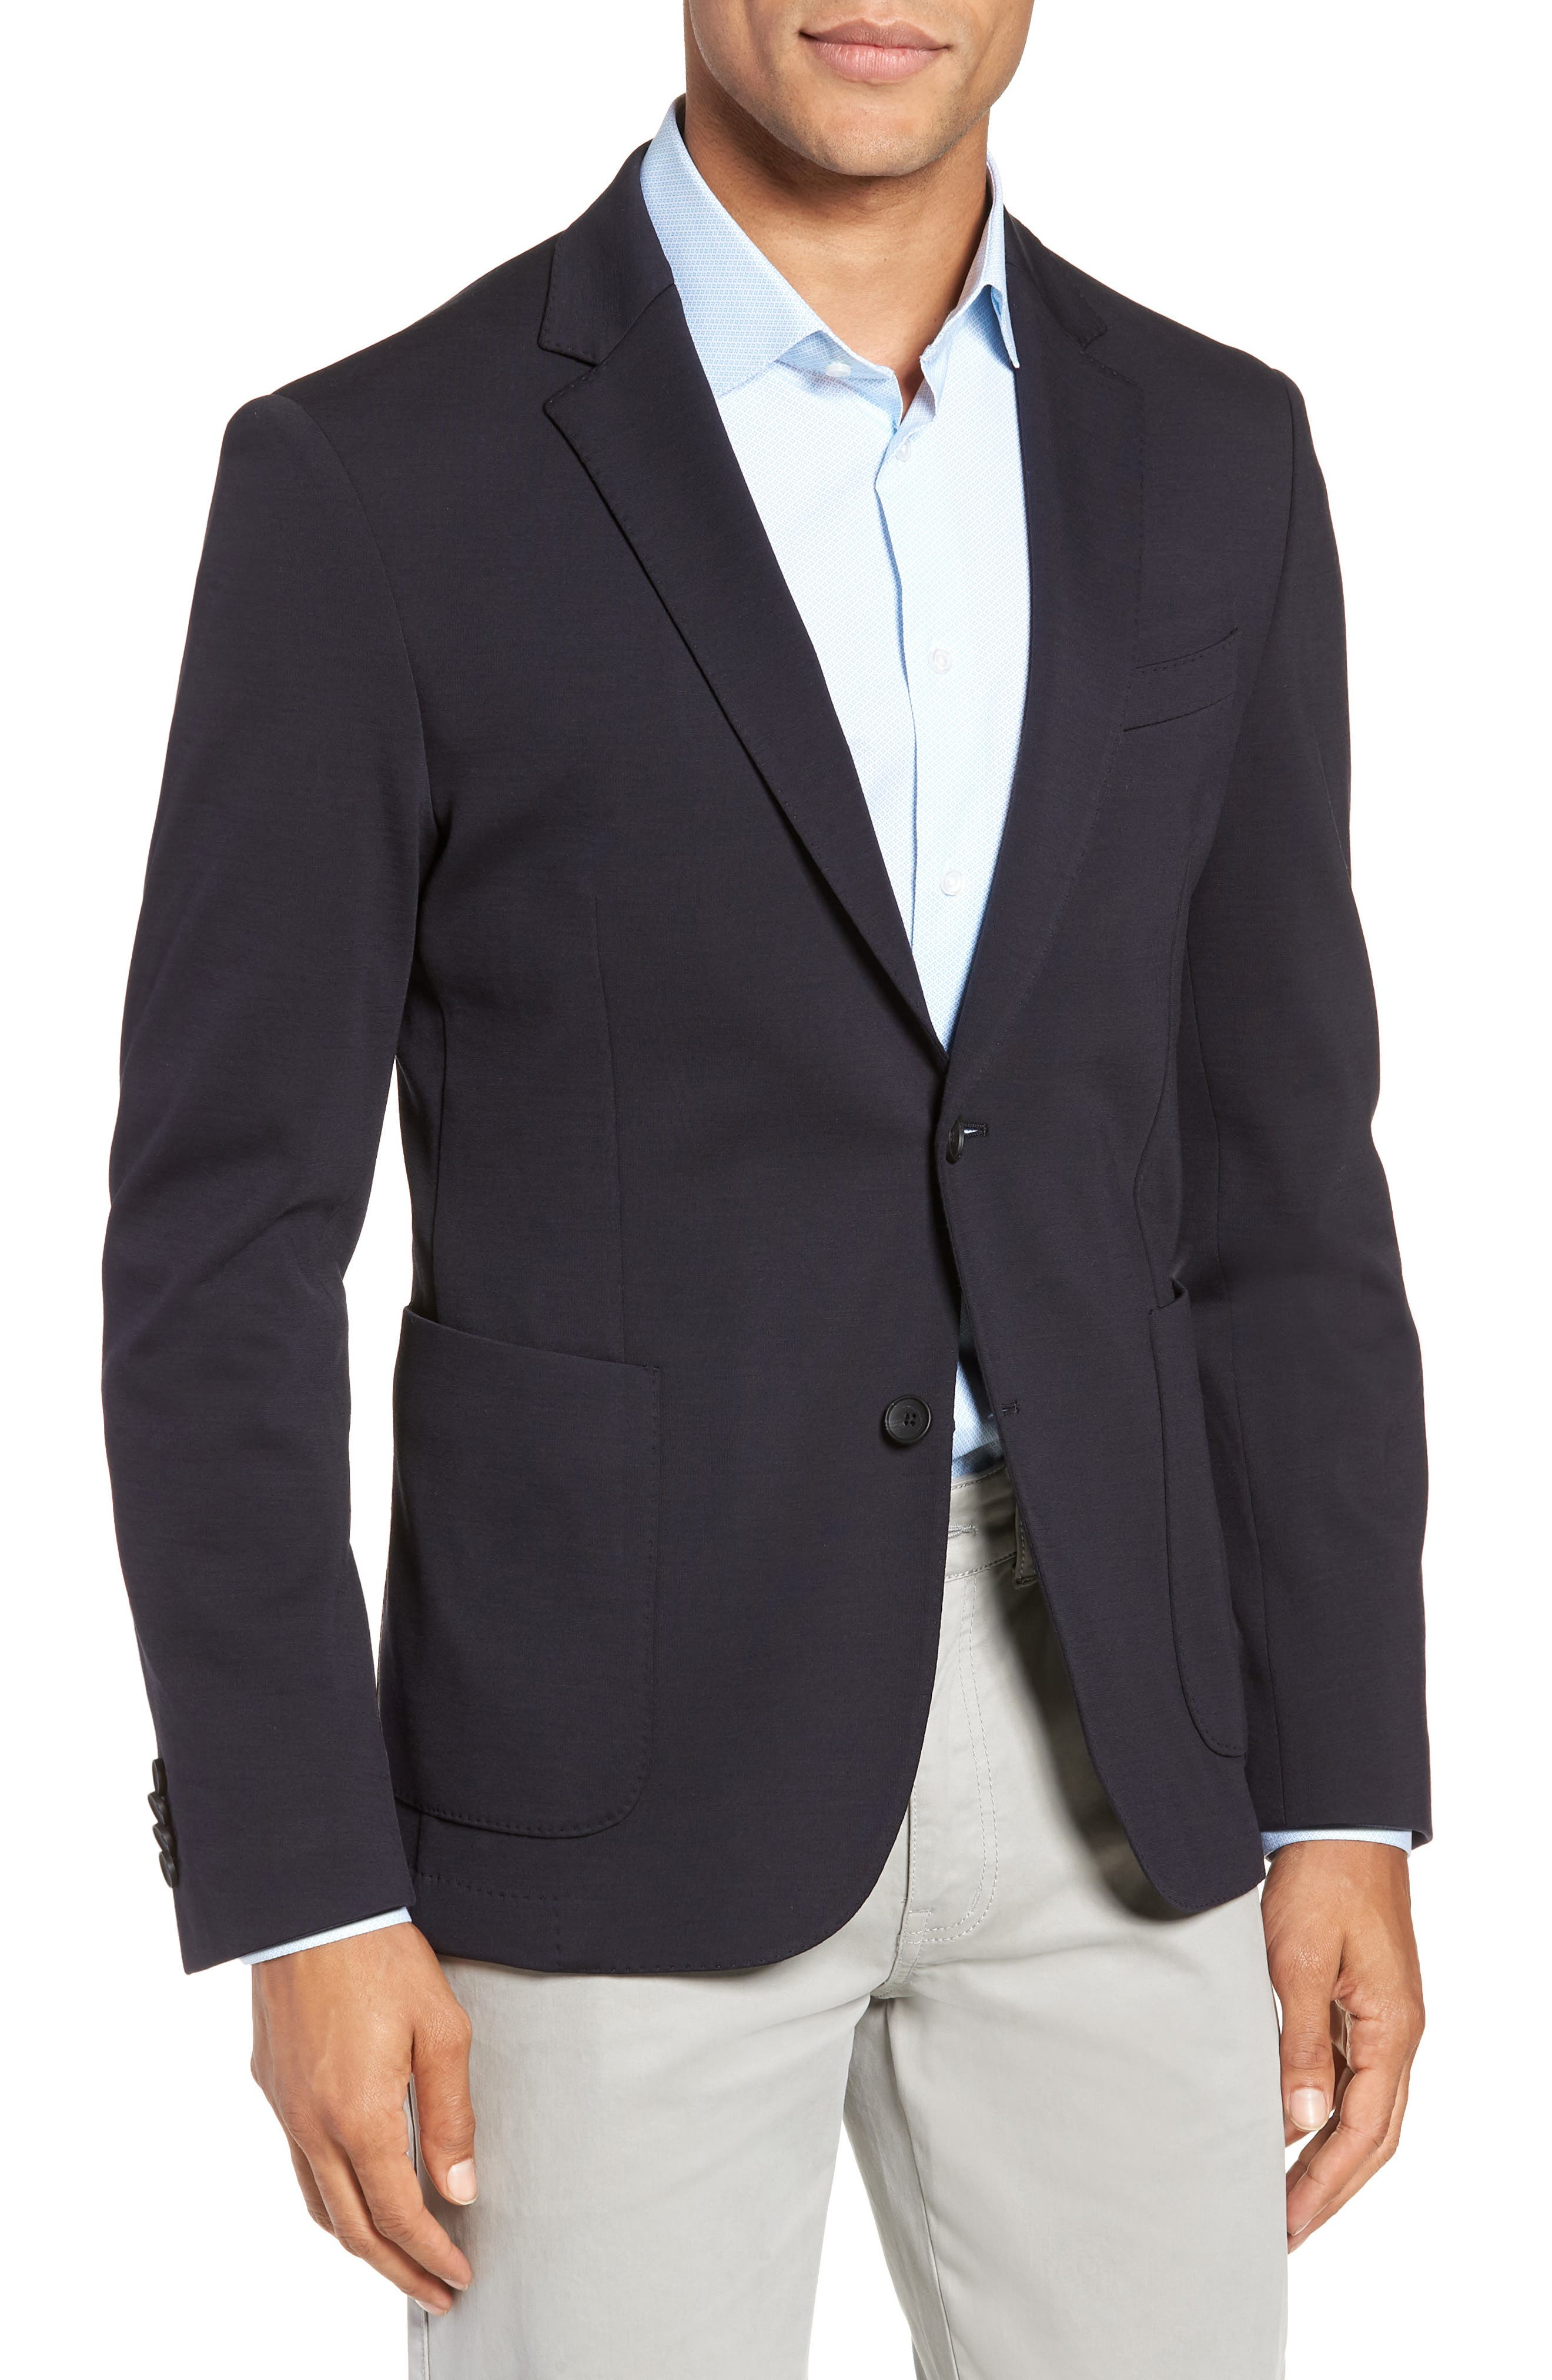 BOSS,                             Nold Trim Fit Stretch Wool Blend Sport Coat,                             Main thumbnail 1, color,                             OPEN BLUE